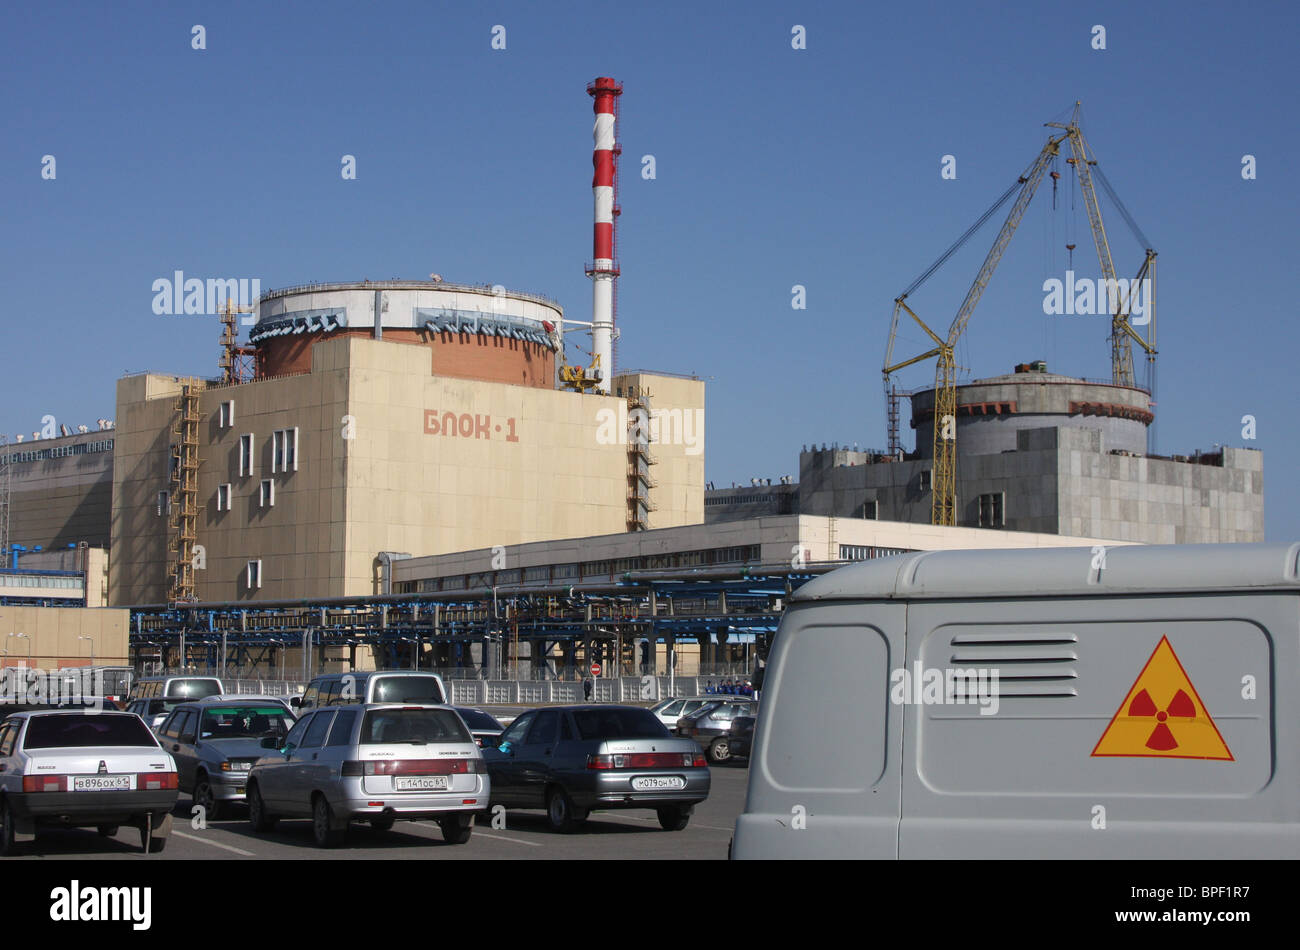 Rostov (previously - Volgodonsk) nuclear power plant - not an easy fate 62